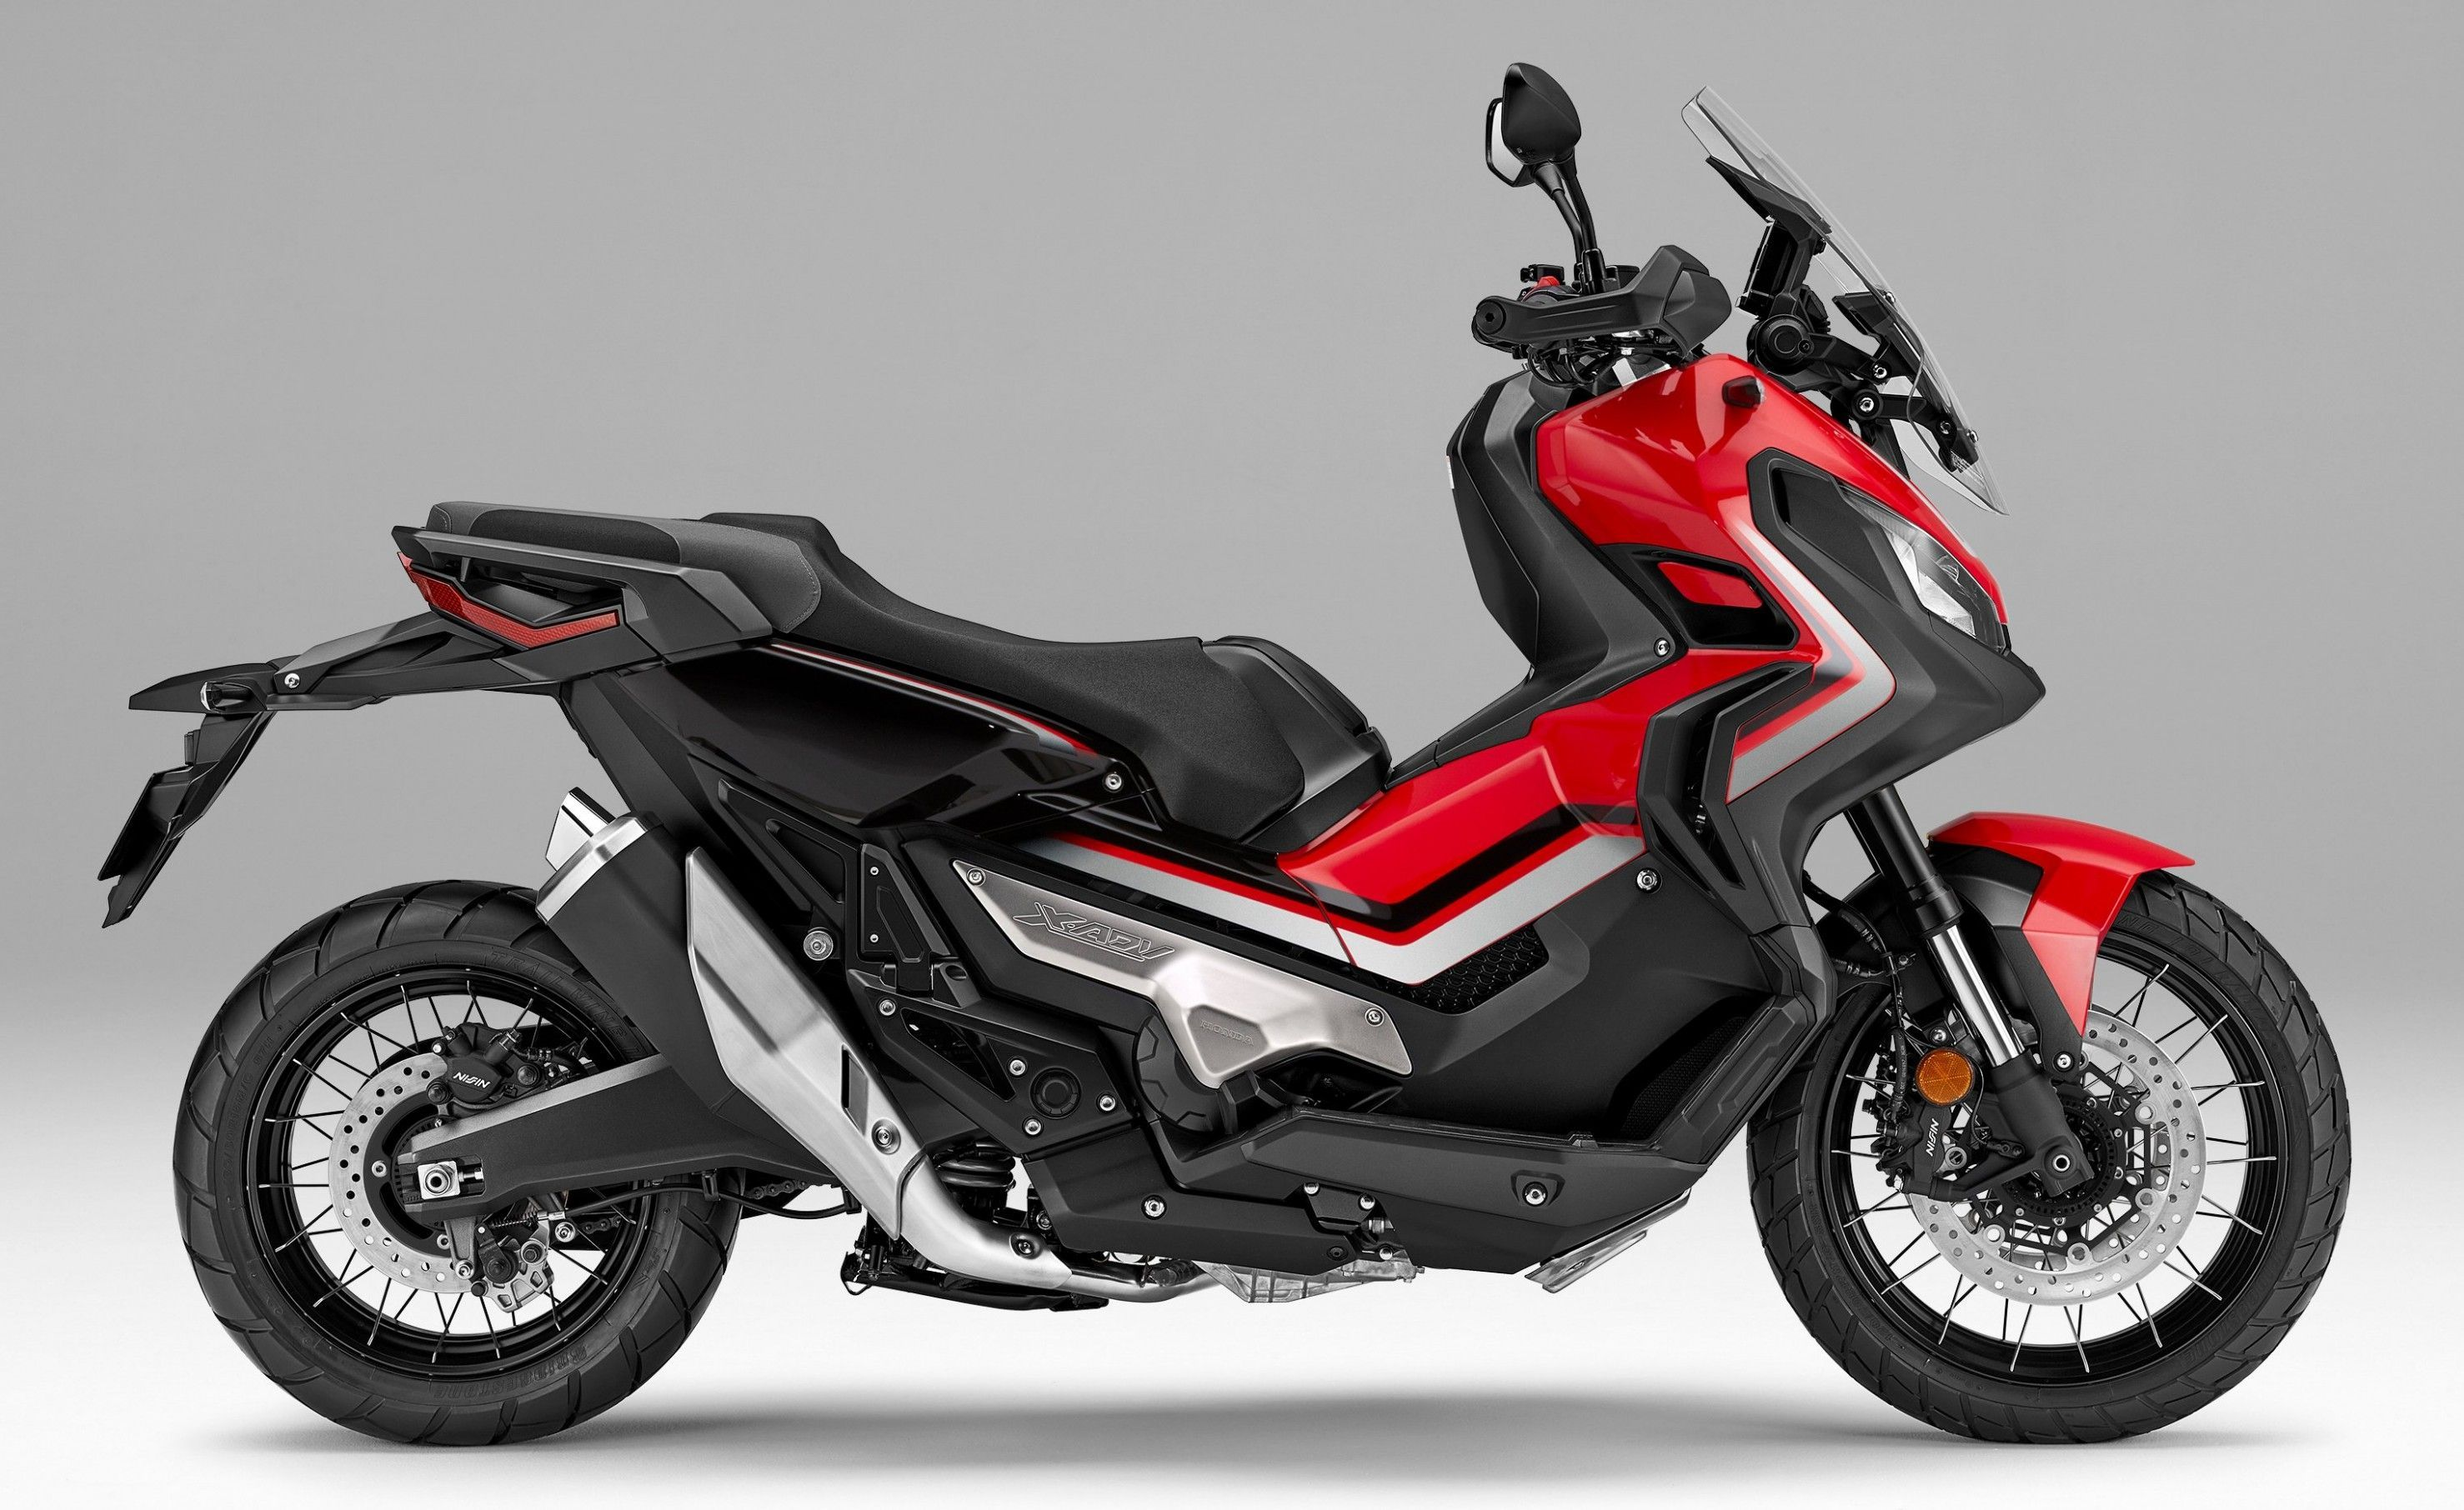 Honda Motorcycle Philippines Price List 2020 History In 2020 Honda Motorcycle Motorcycle Honda Scooters